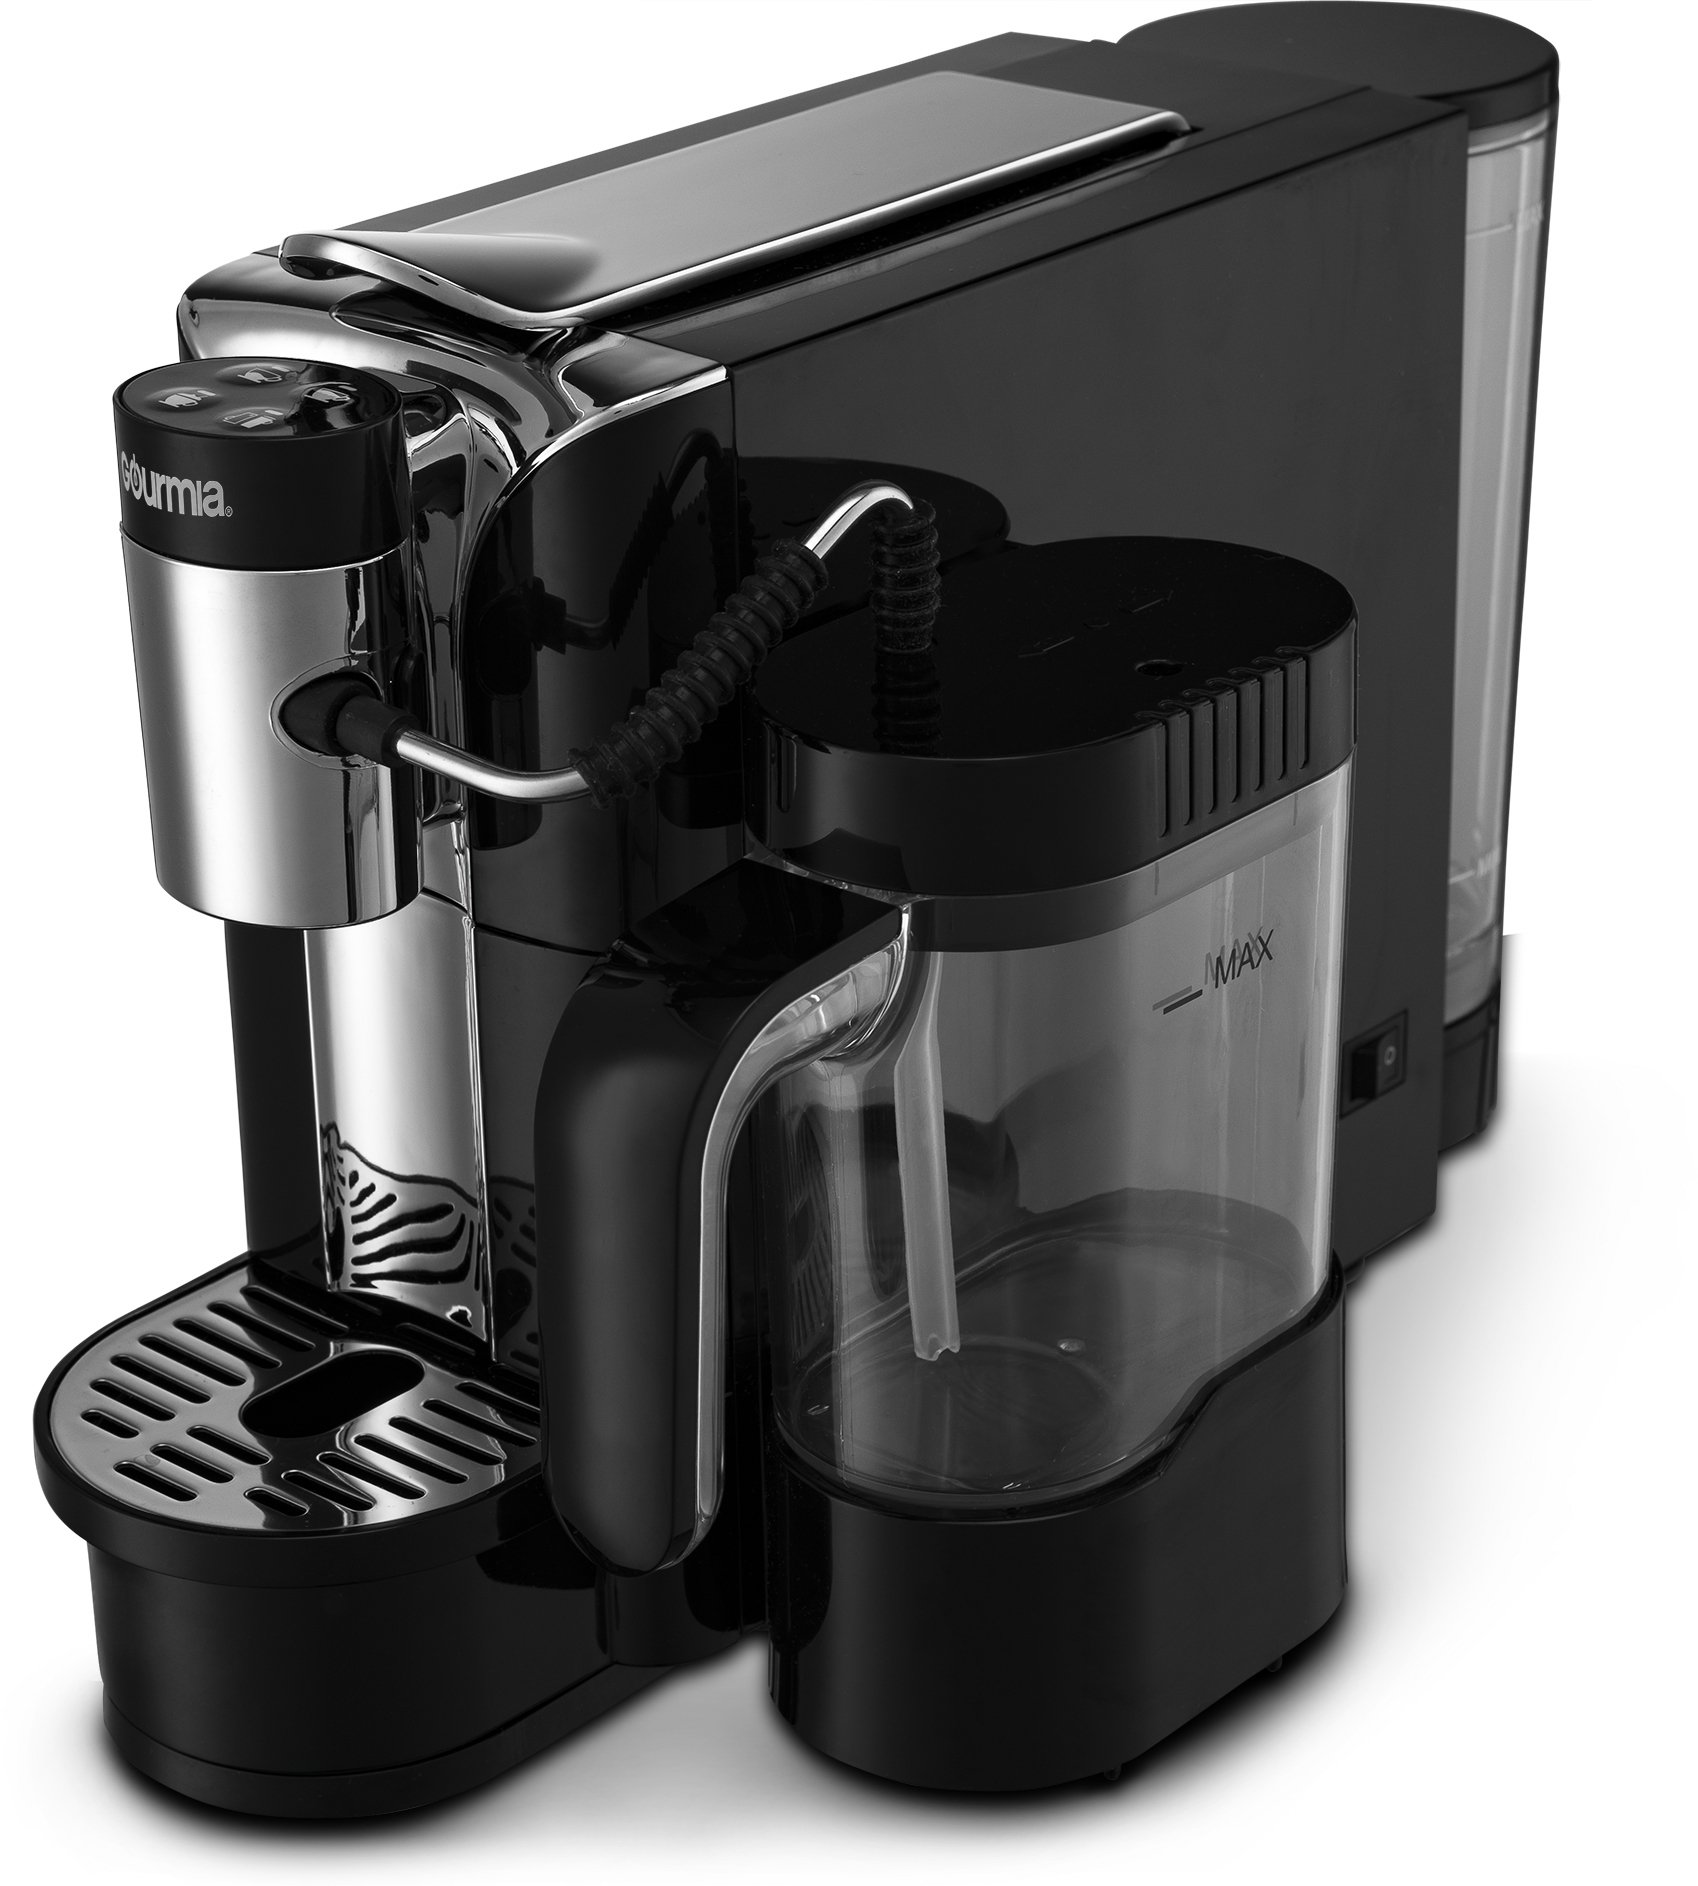 Gourmia GCM5500 - One Touch Automatic Espresso Cappuccino & Latte Maker Coffee Machine - Brew, Froth Milk, and Mix Into Cup with the Push of One Button- Nespresso Compatible by Gourmia (Image #3)